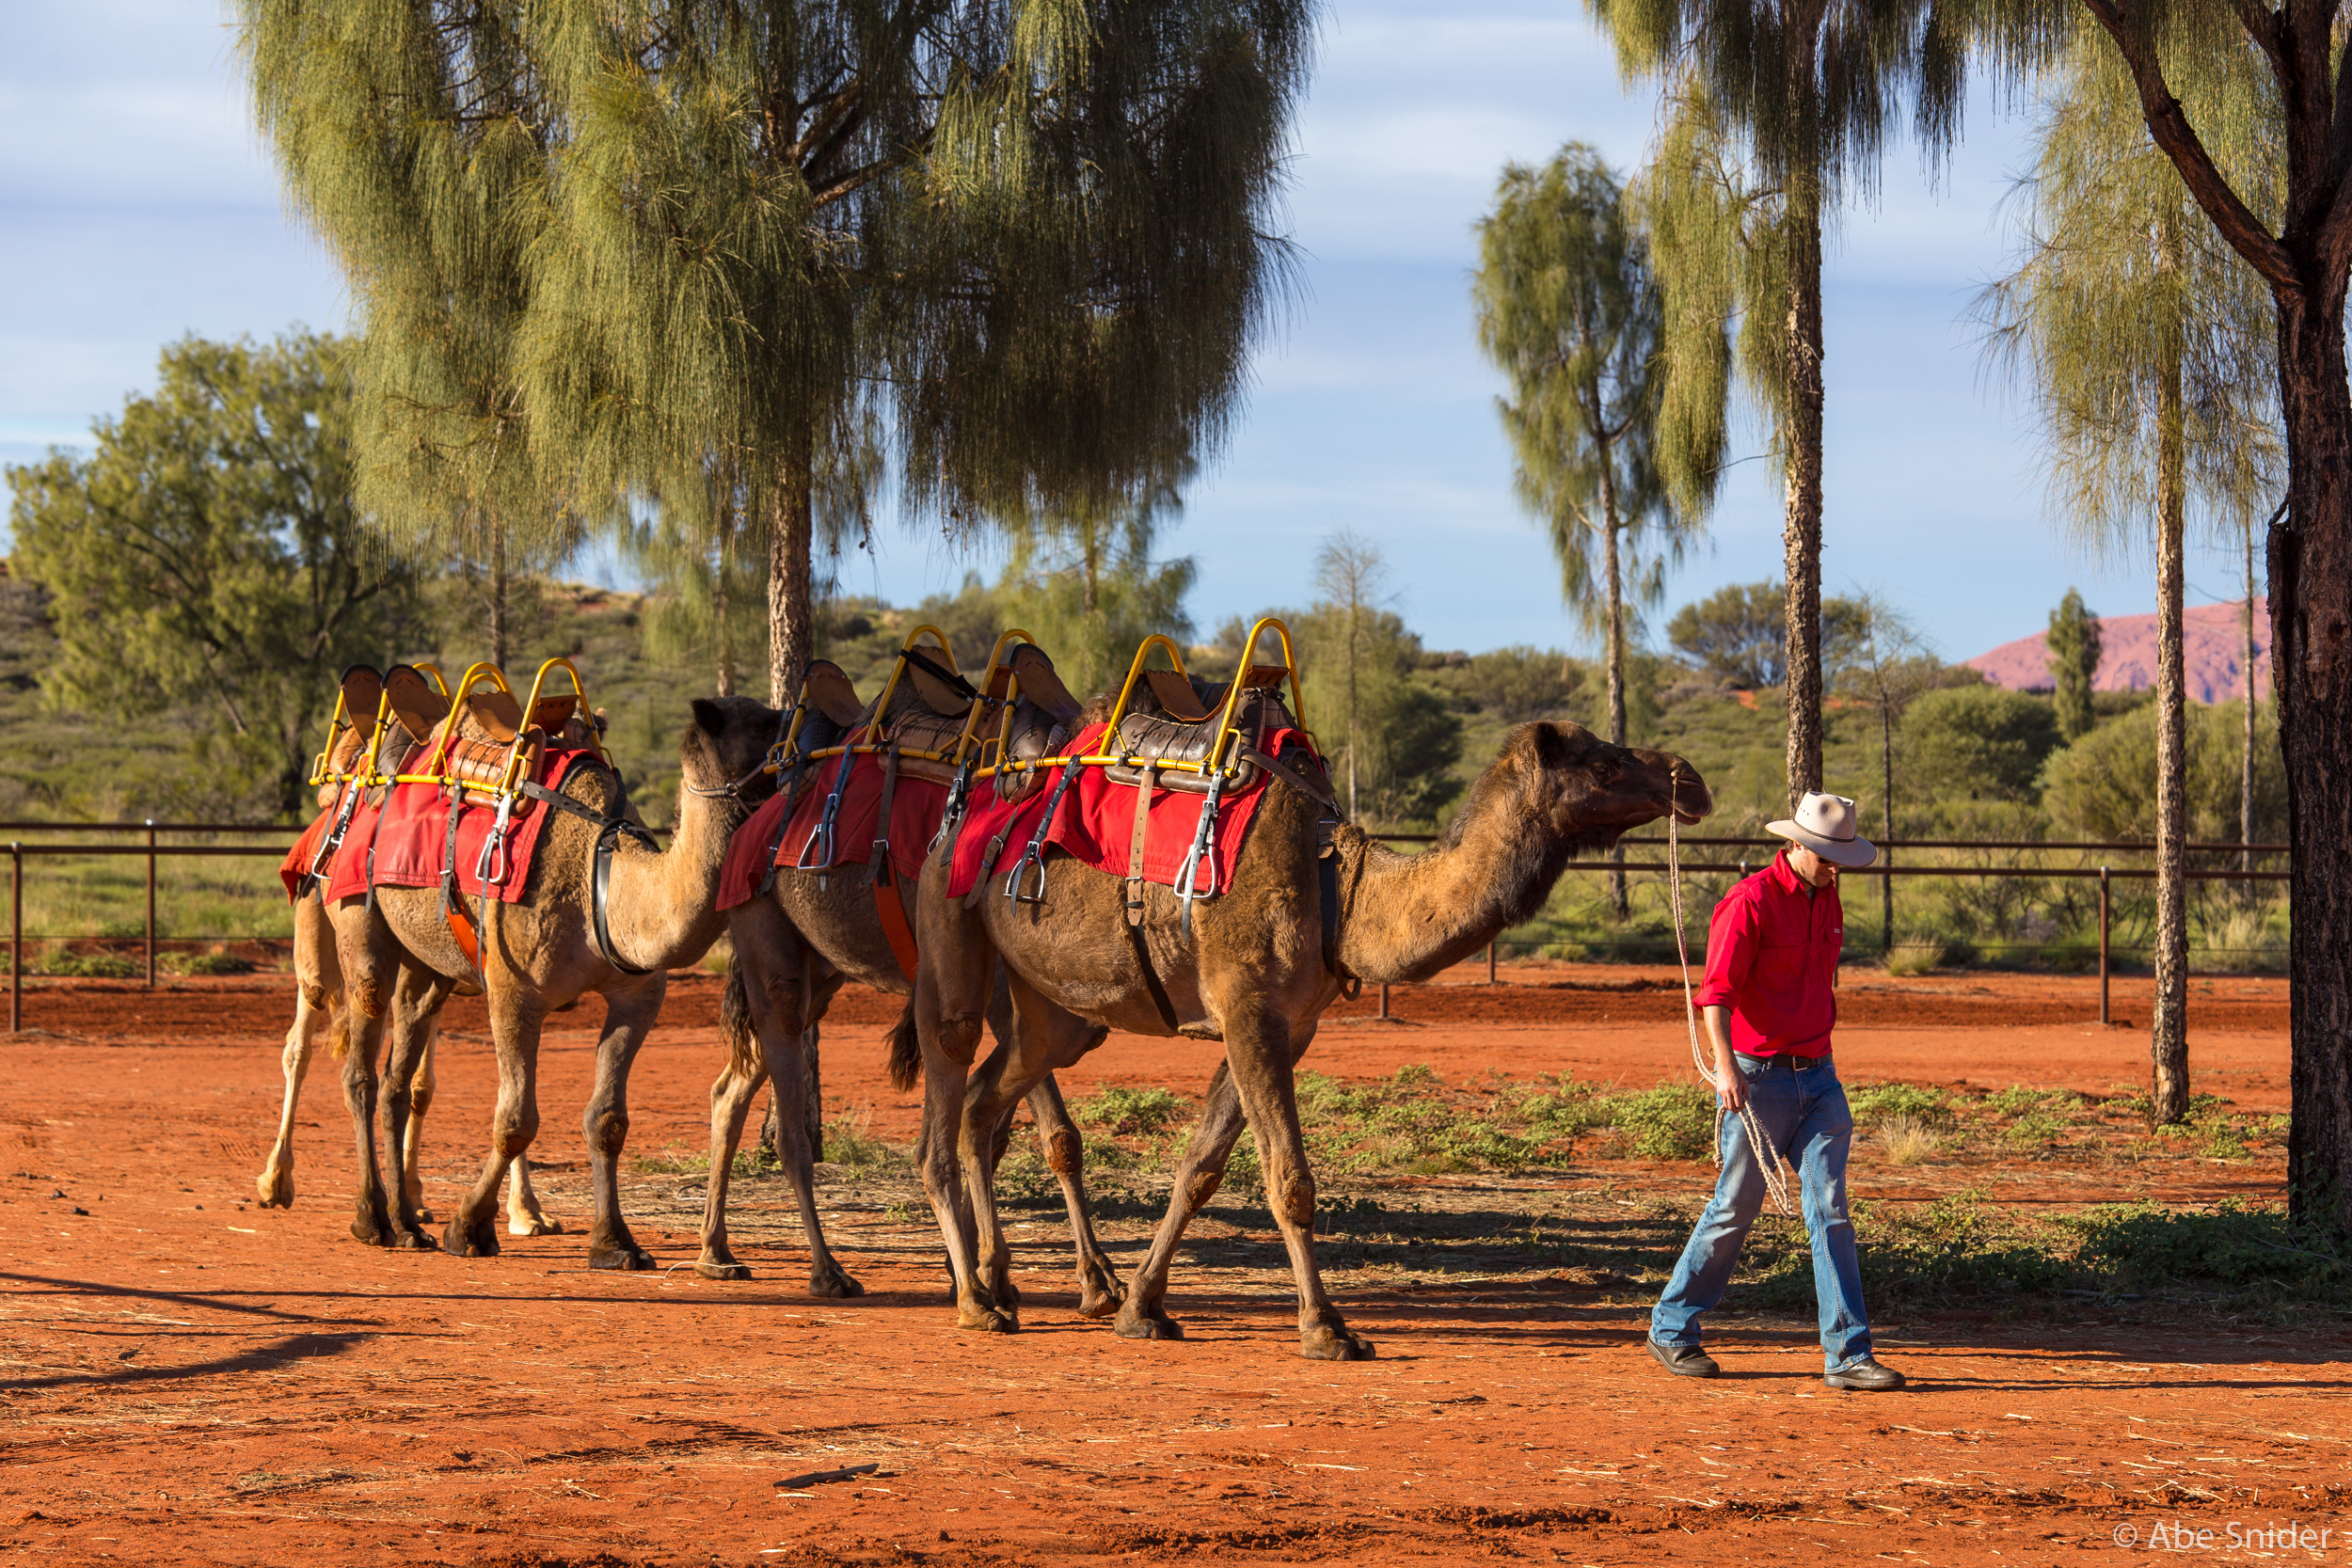 All camels on hand at the camel tour operator were once wild camels.